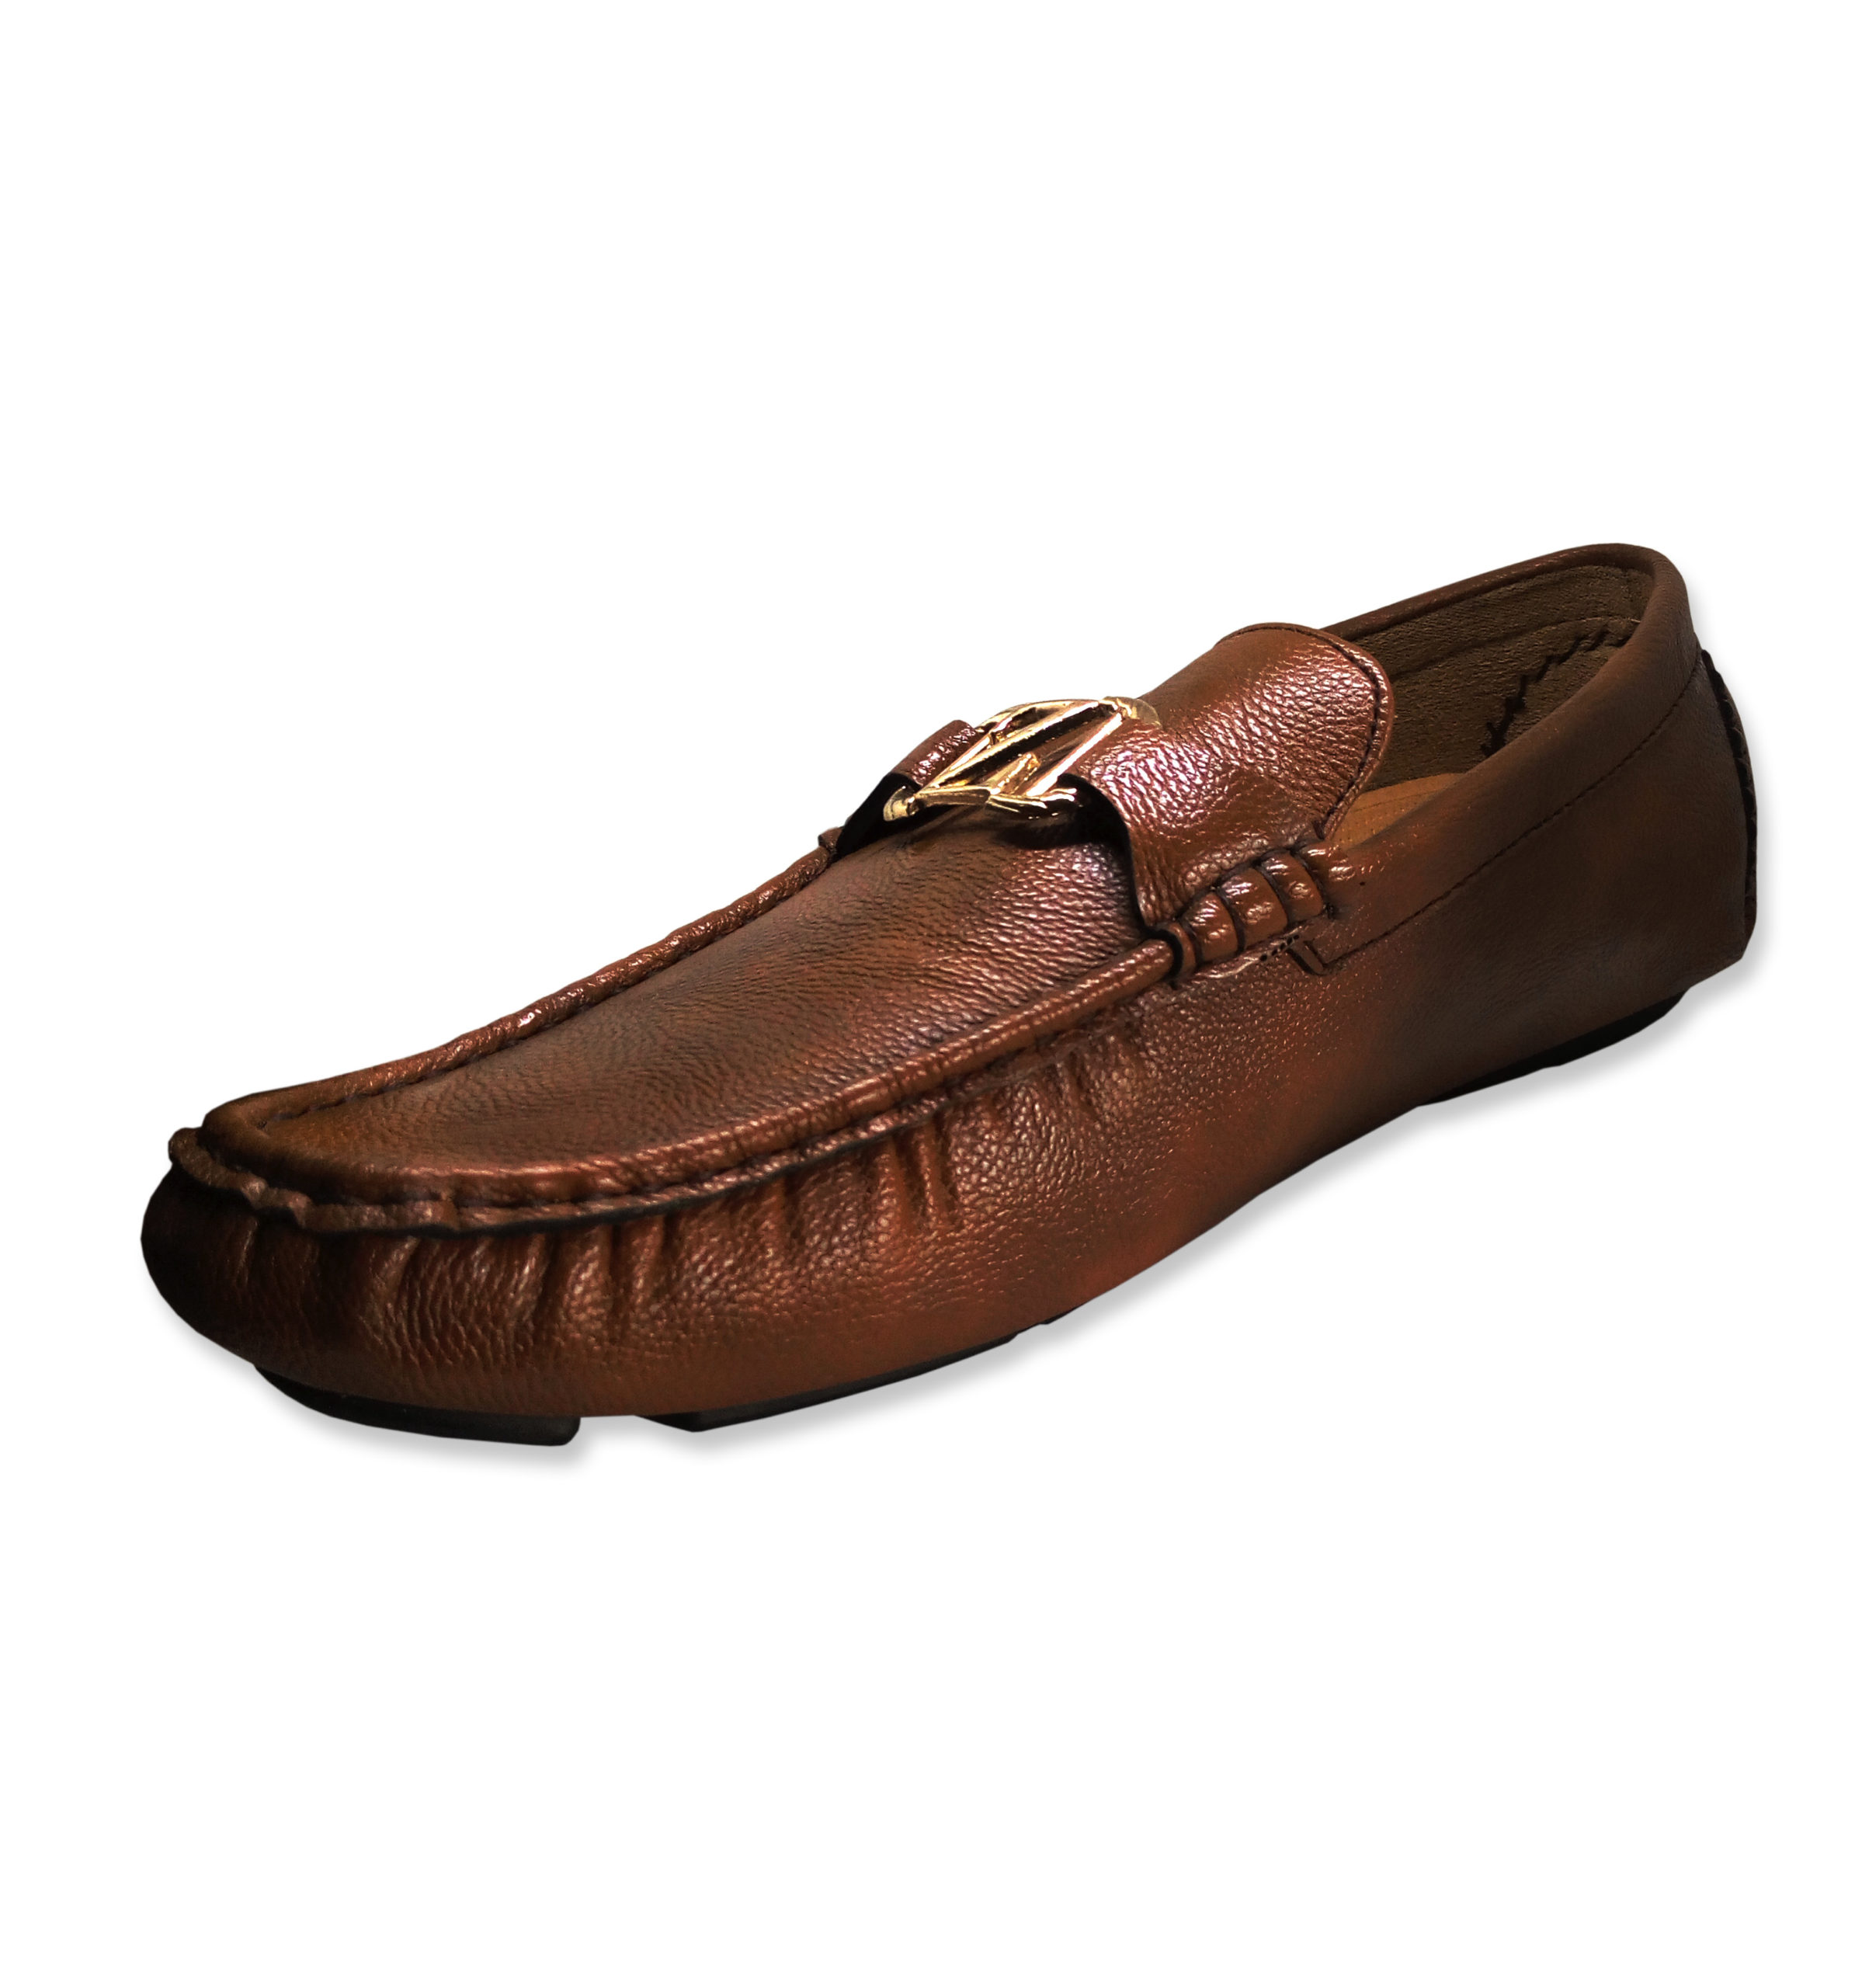 Leather Men Loafers Shoe B2718 Light Brown Zuba Online Mall